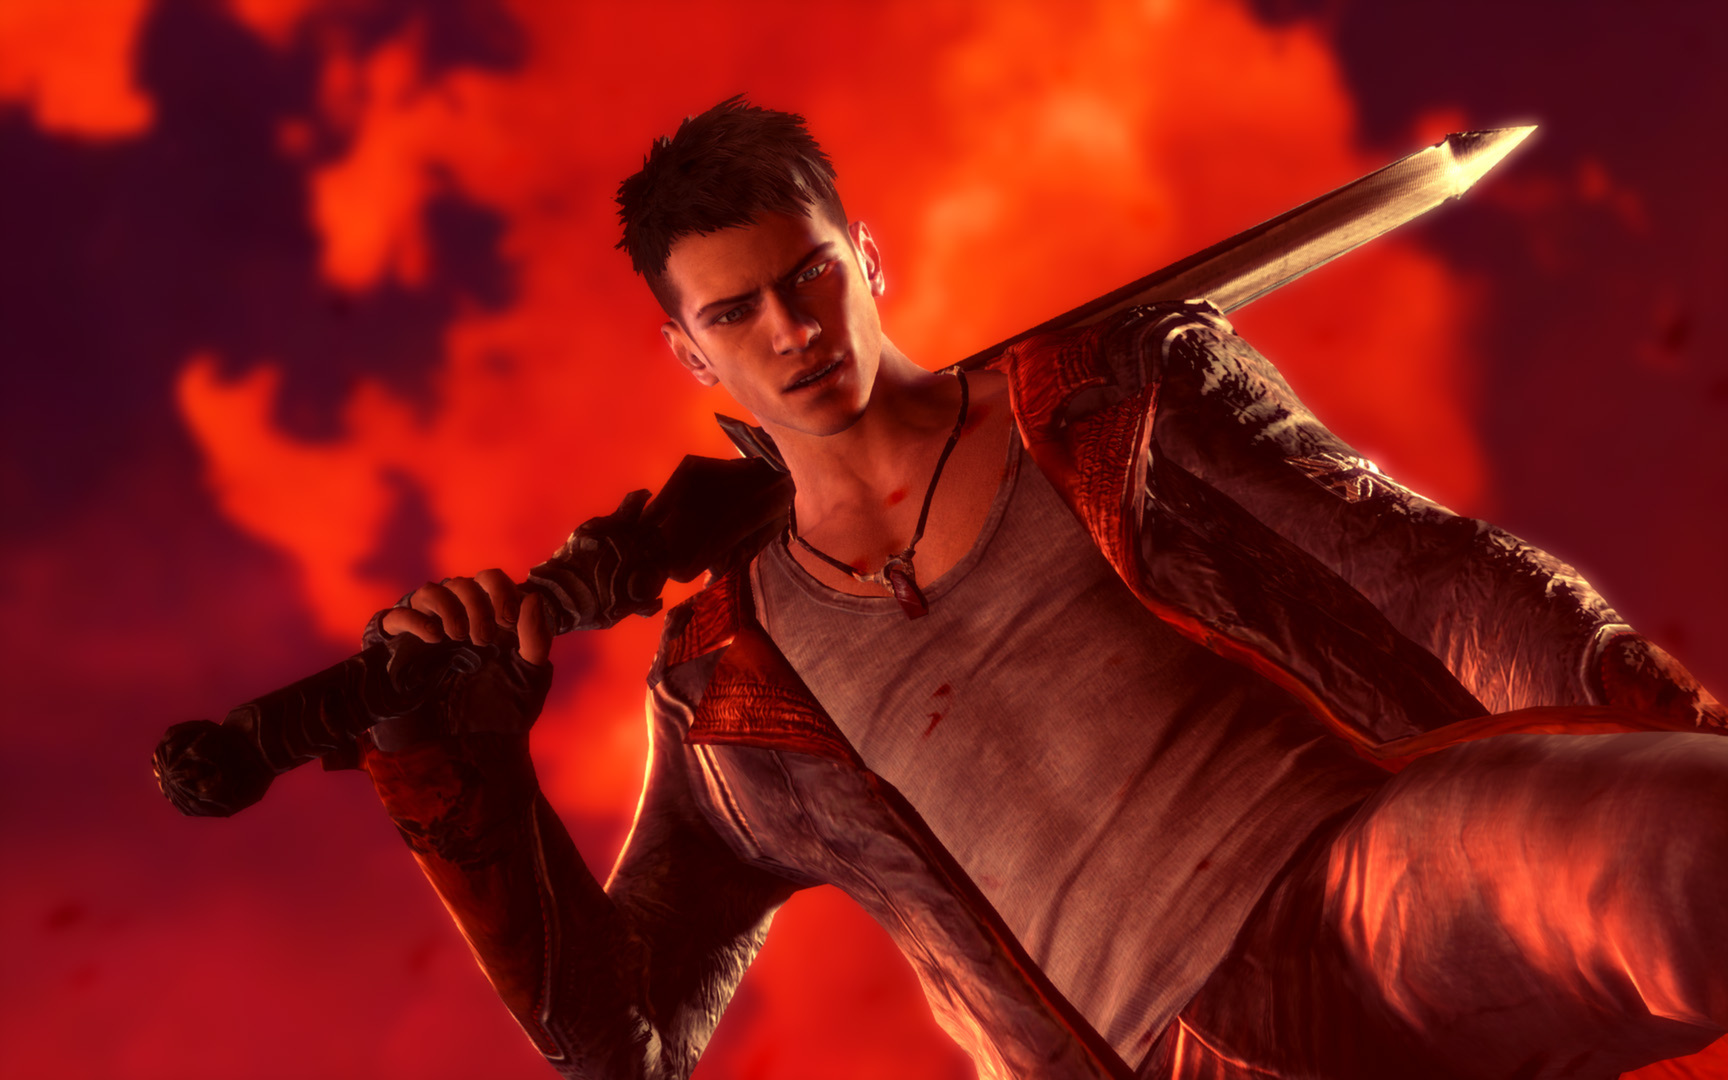 Steamdmc devil may cry voltagebd Images